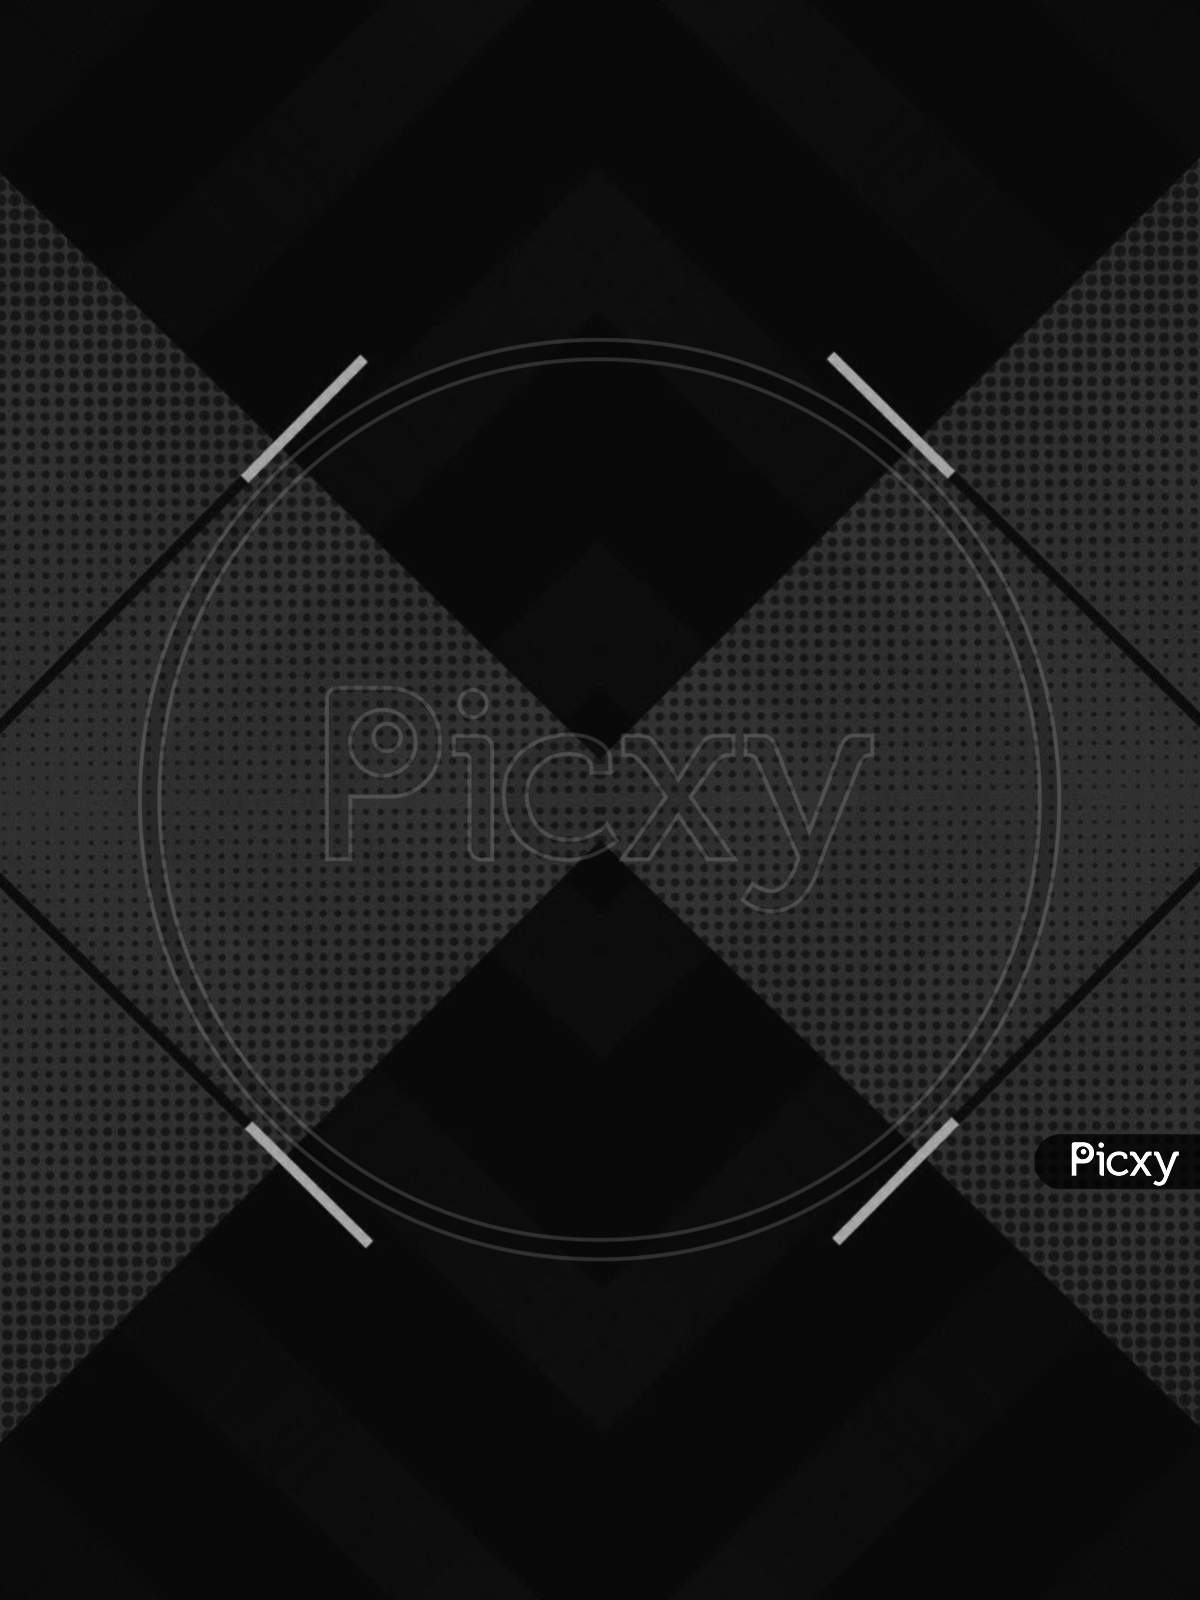 A creative 3d design abstract in black background